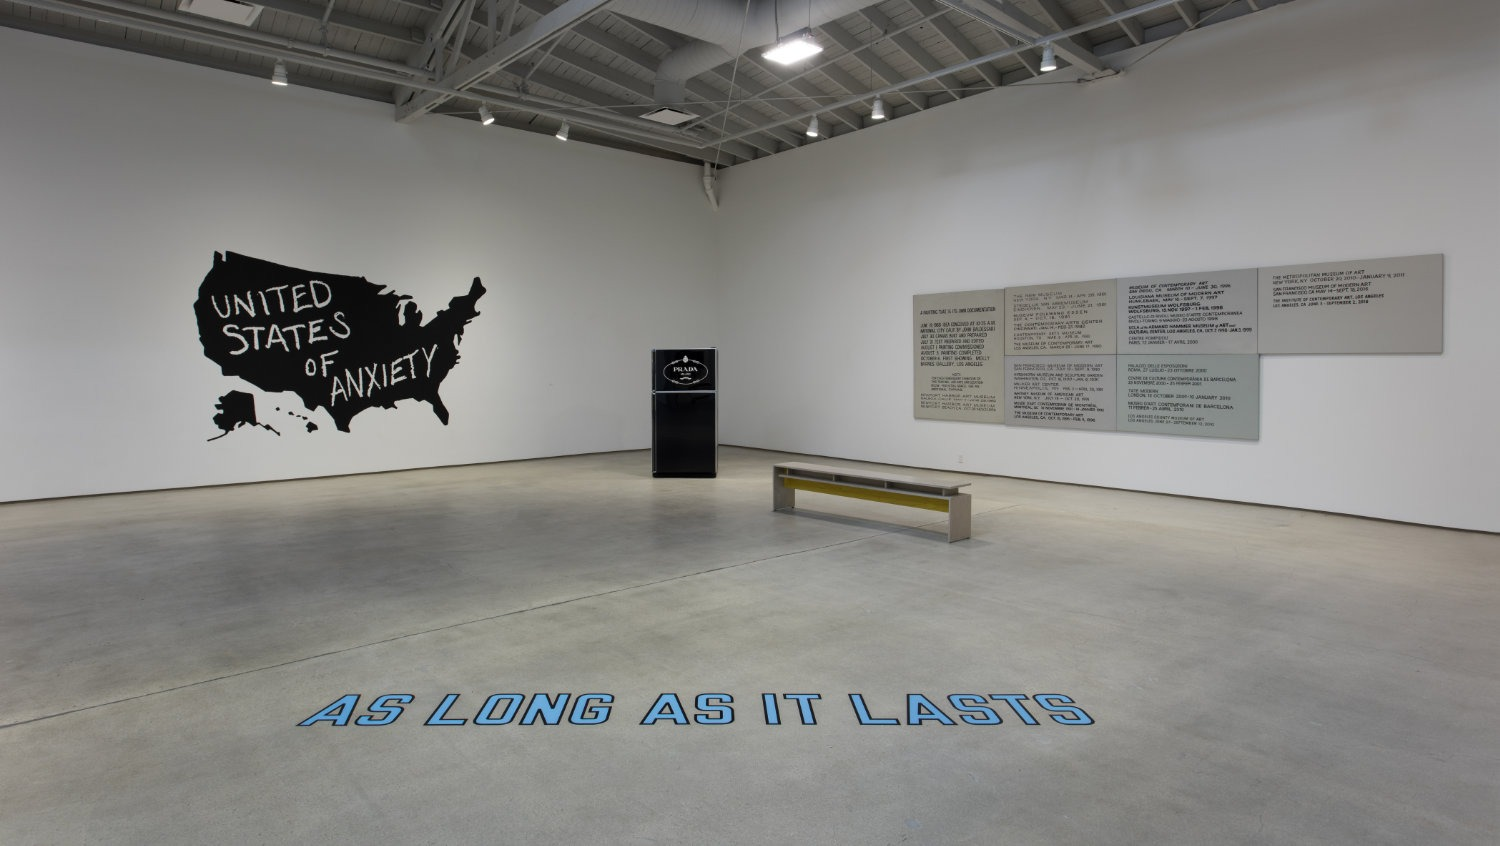 This Brush for Hire: Norm Laich & Many Other Artists - Institute of Contemporary Art, LA